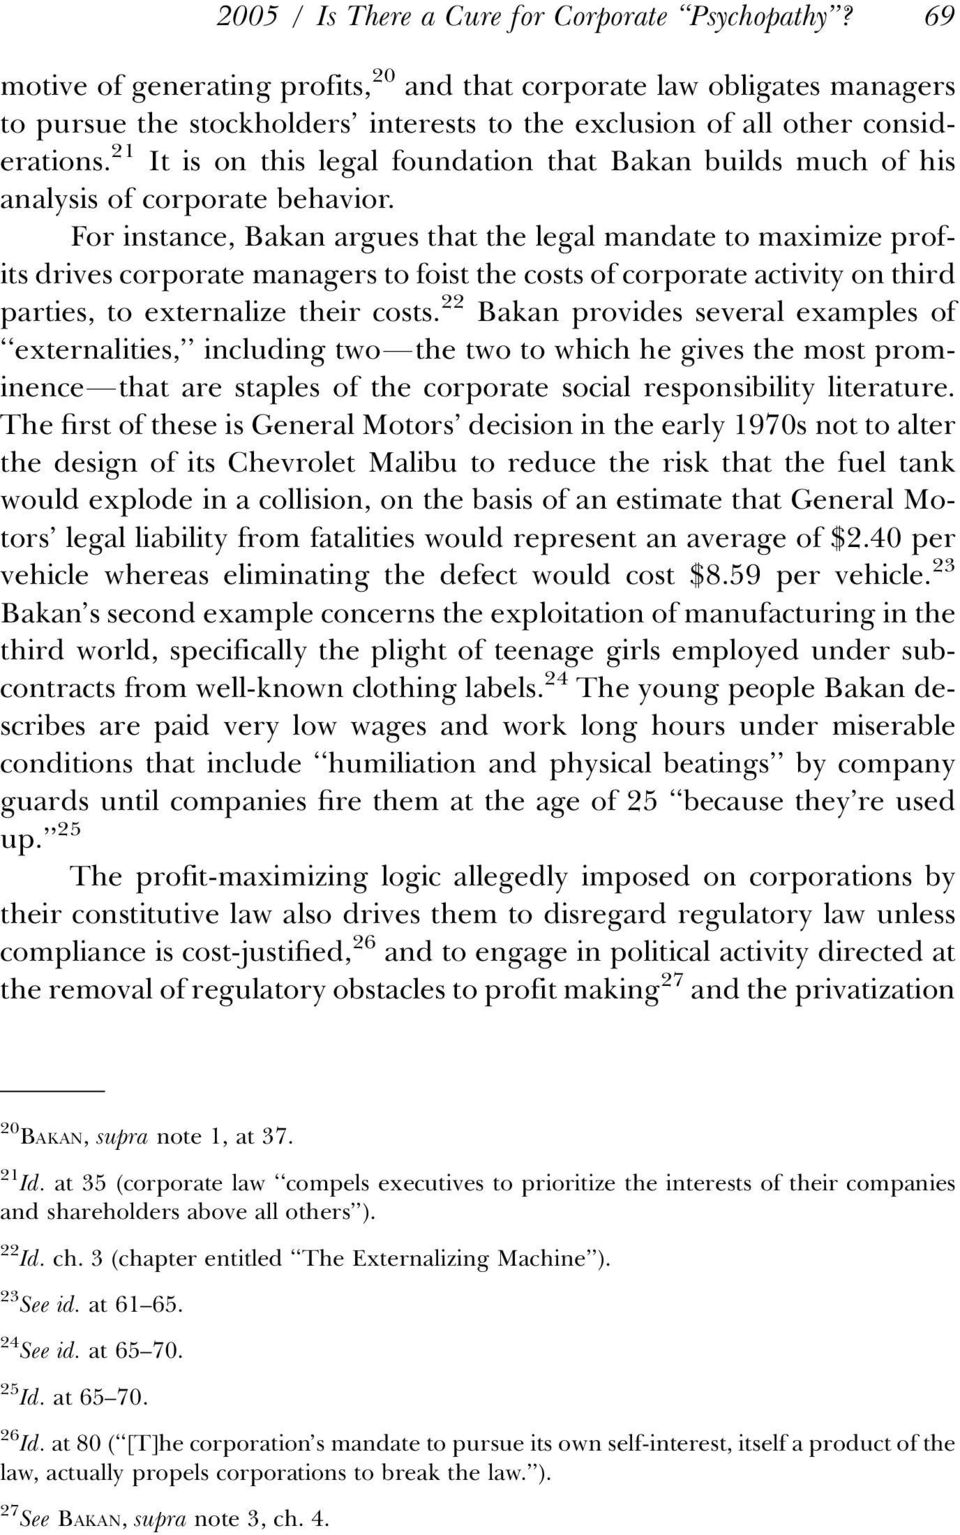 21 It is on this legal foundation that Bakan builds much of his analysis of corporate behavior.